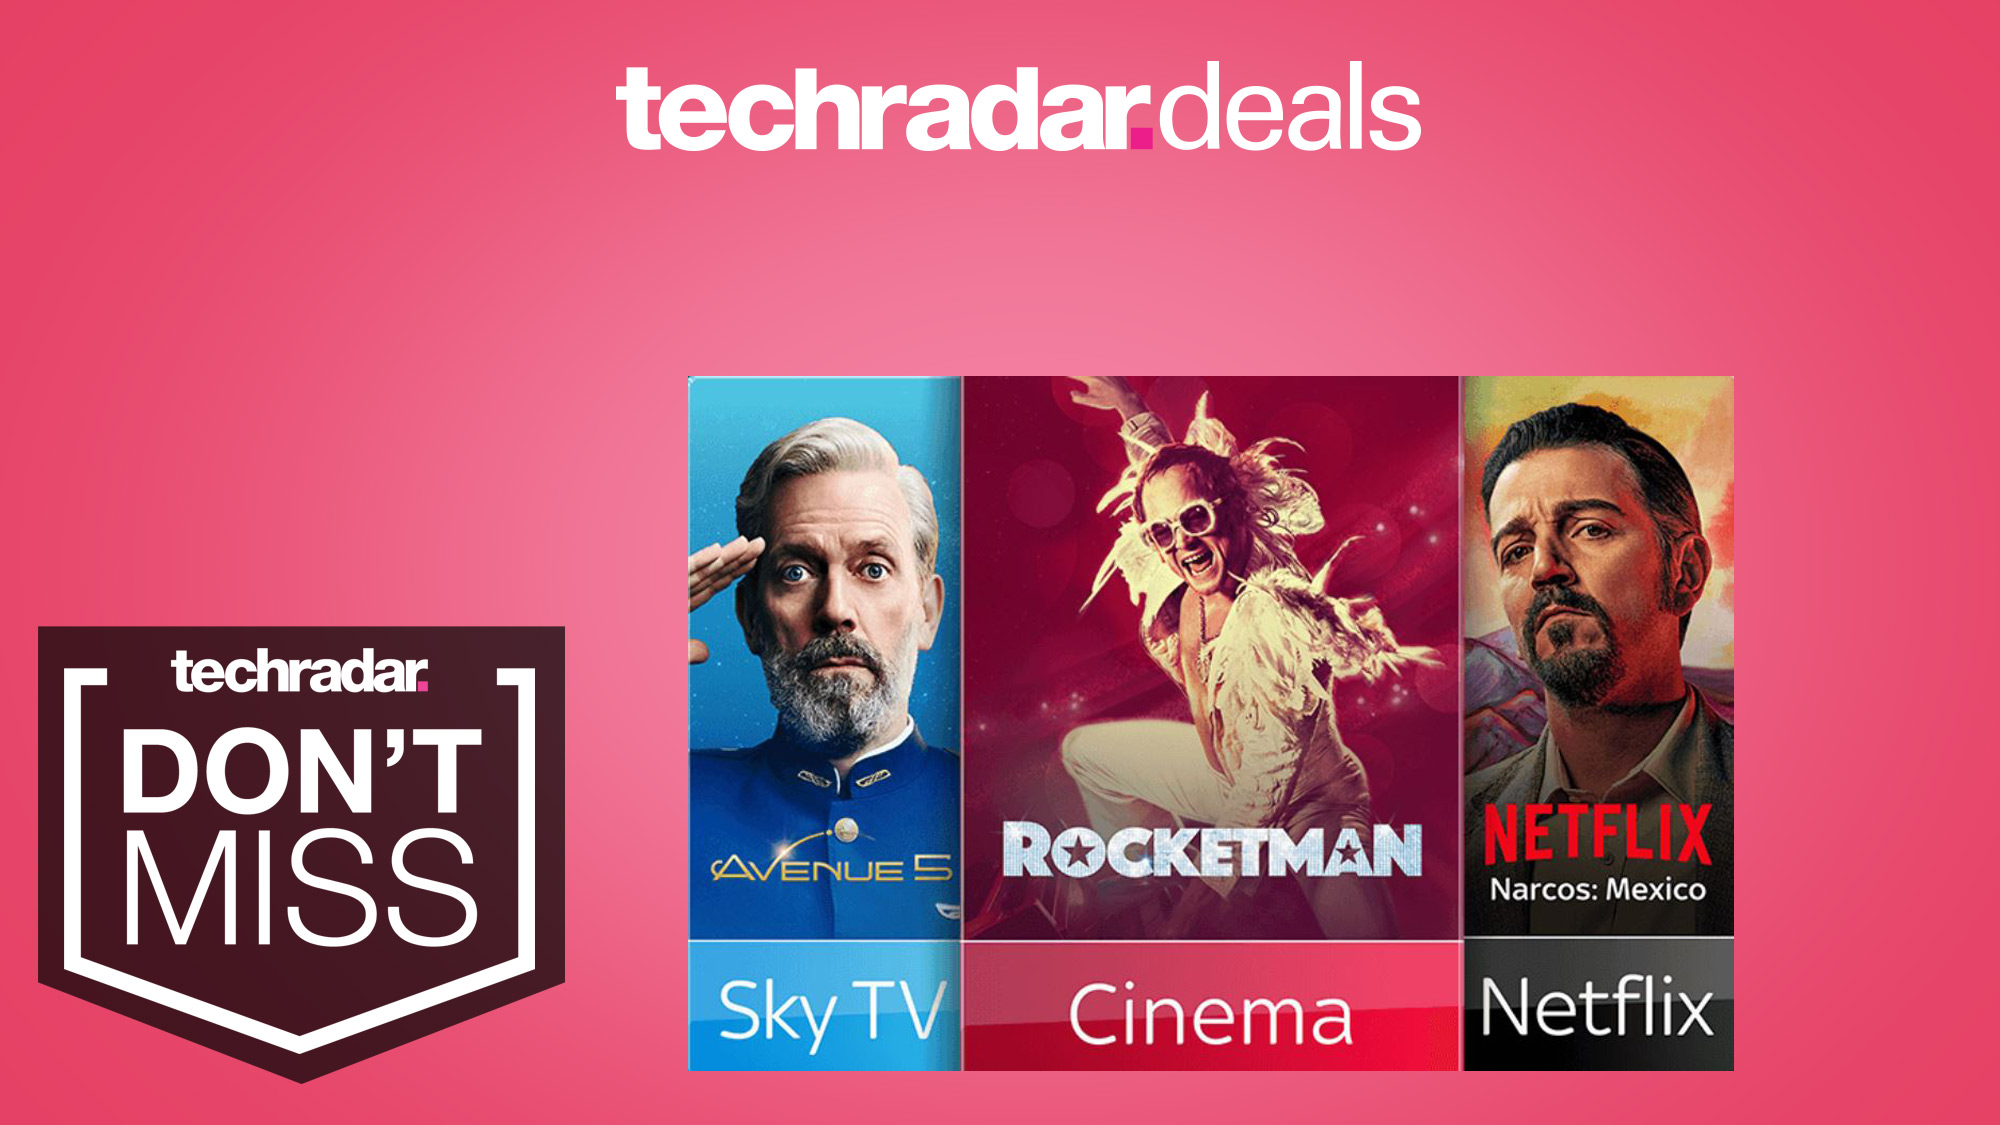 Save £108 with these latest Sky TV deals - get Netflix, Sky Cinema and more